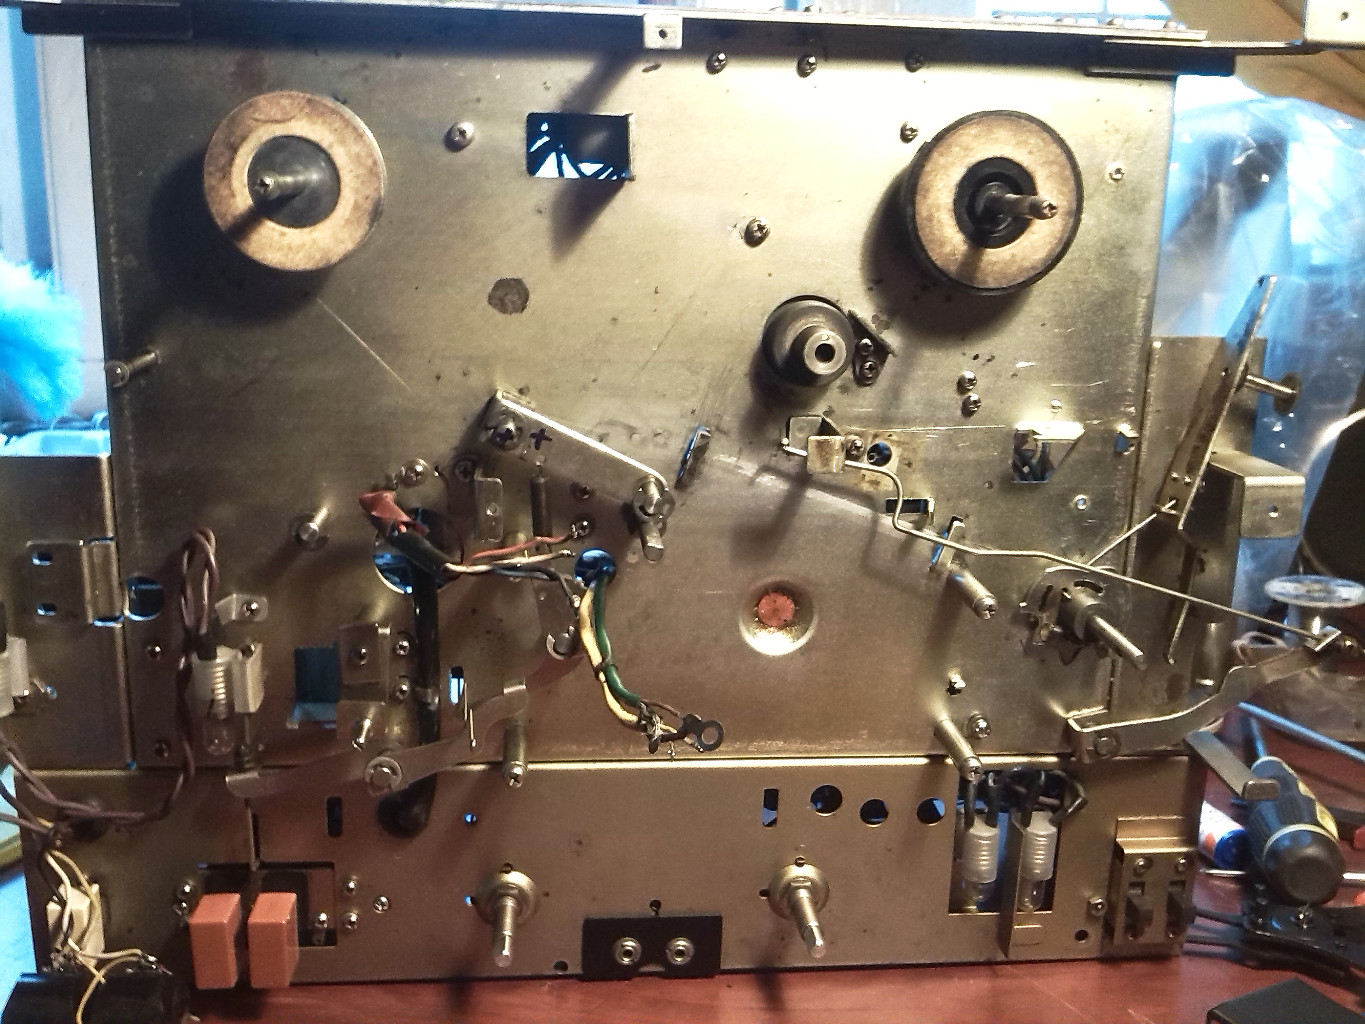 Disassembled TC-500 reel to reel tape recorder.